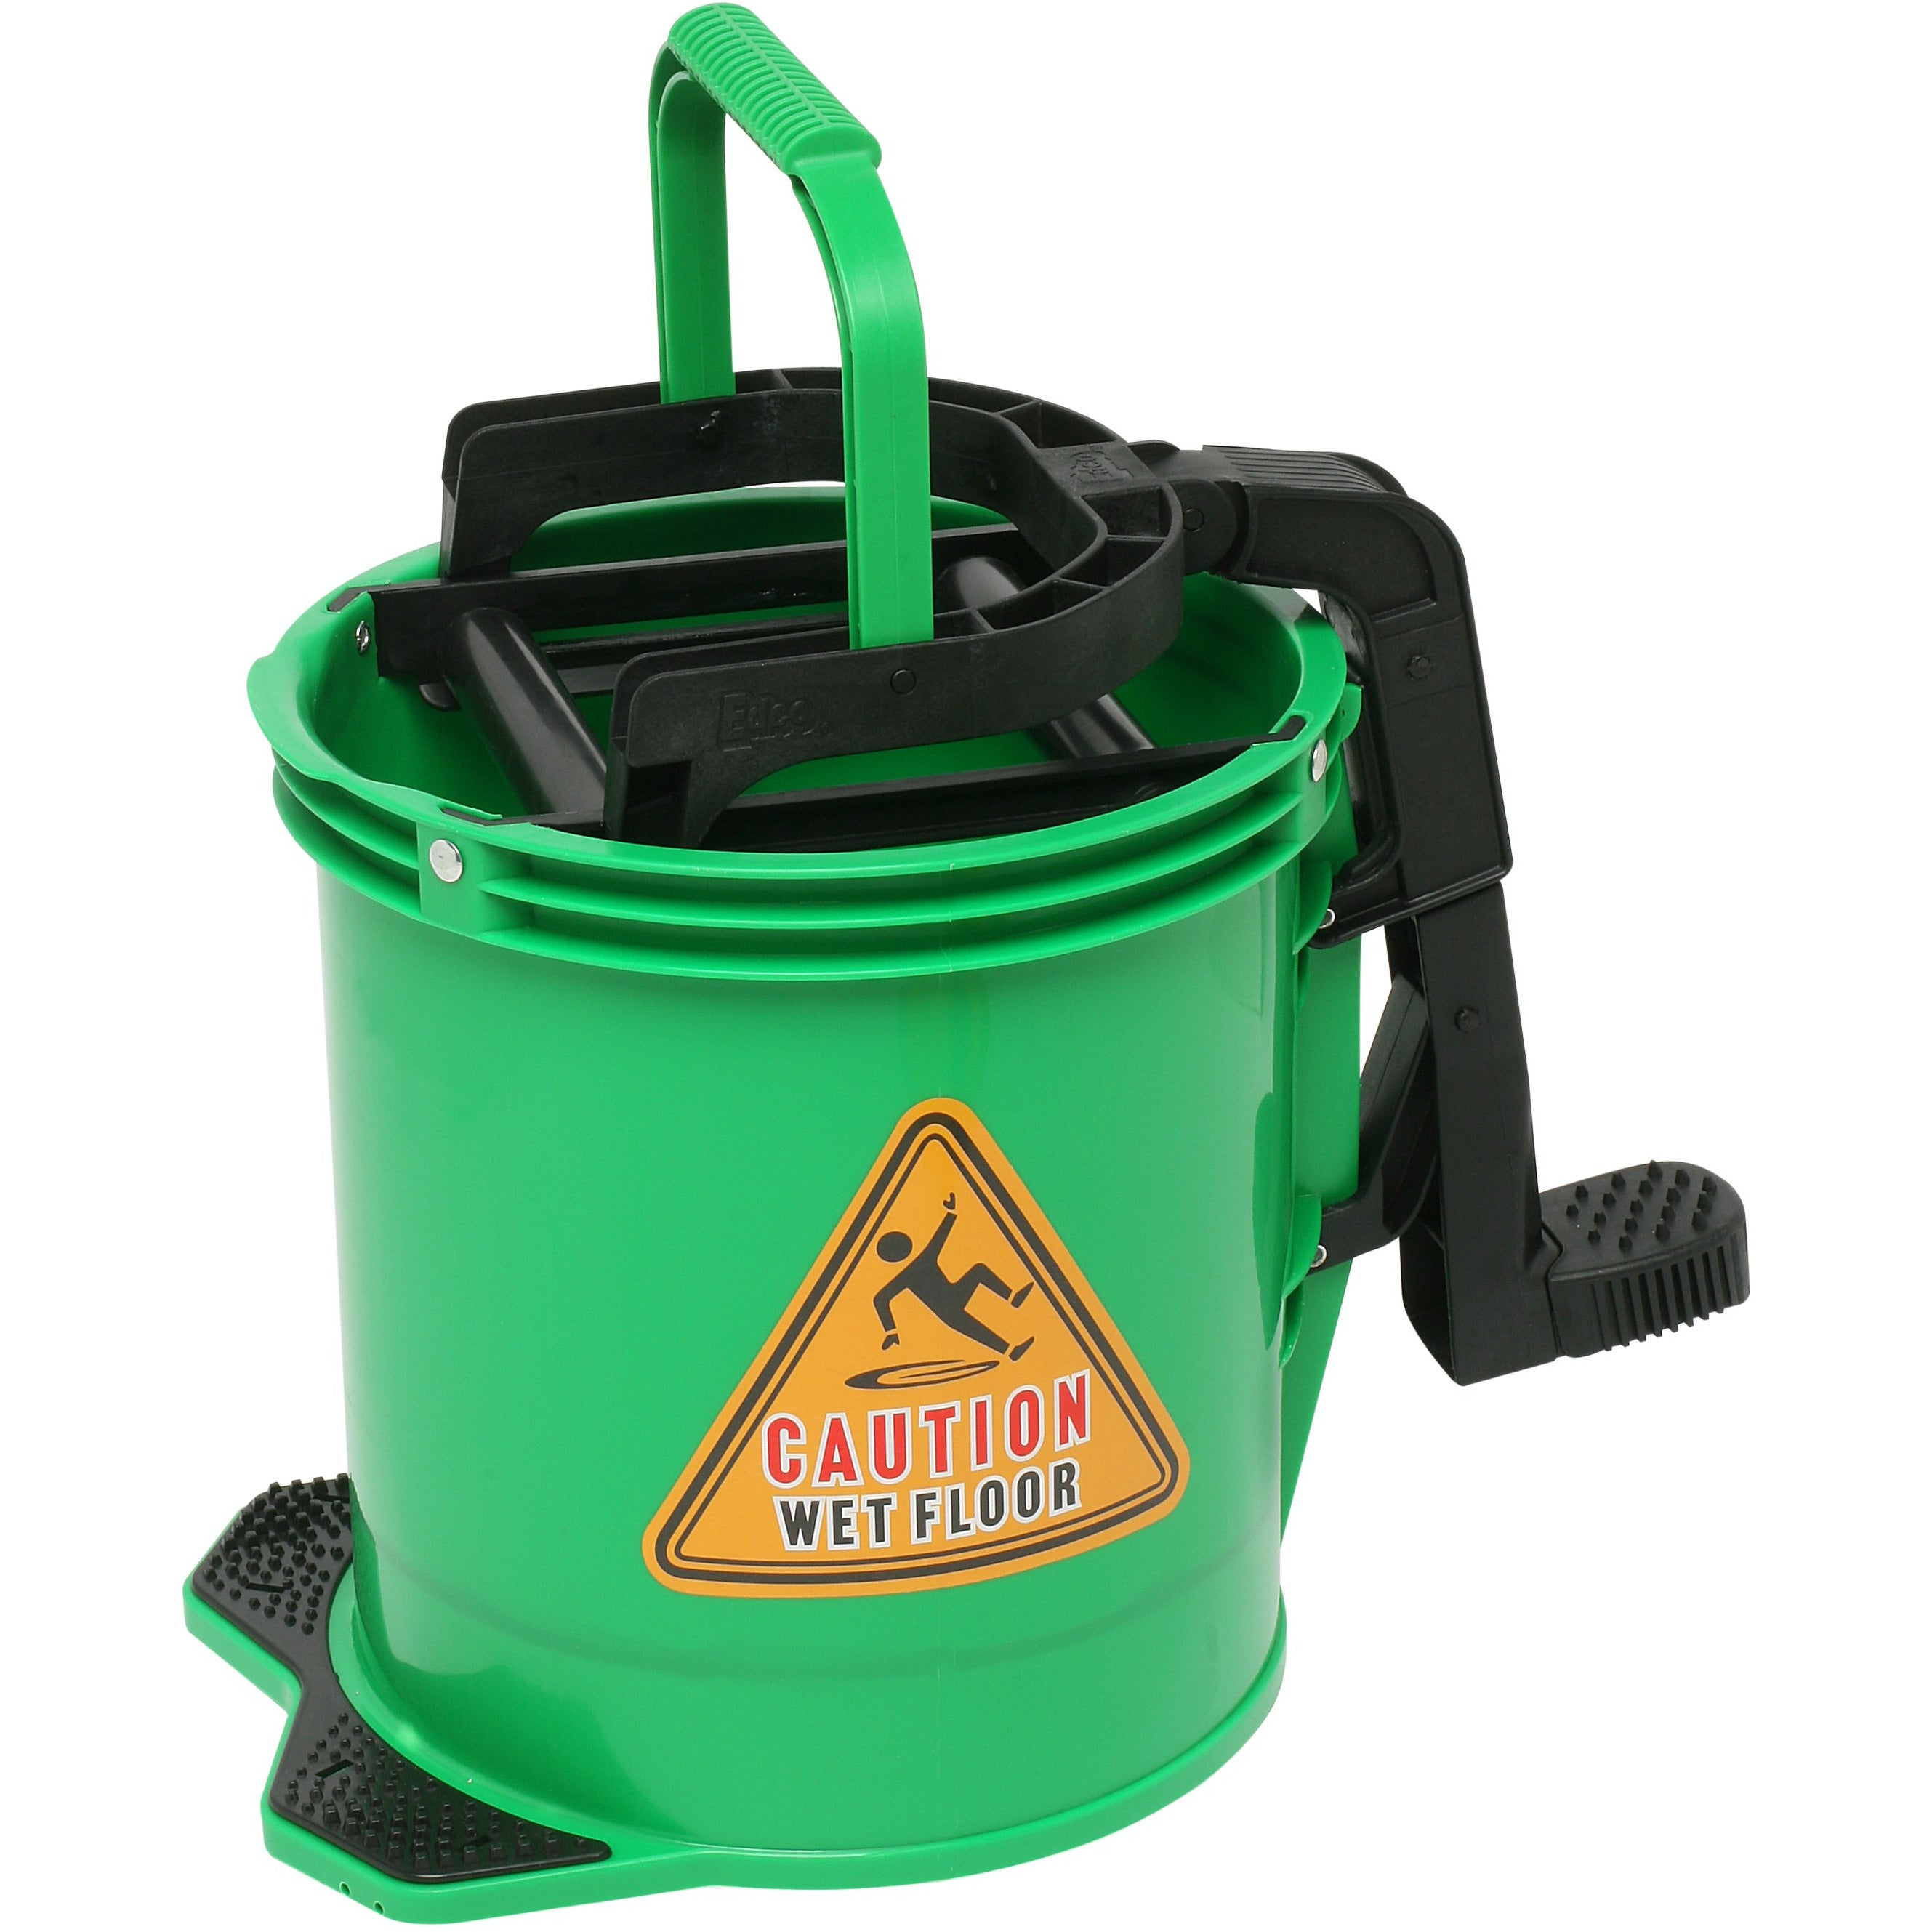 EDCO ENDURO NYLON WRINGER BUCKET Green - Sold by Single Unit in multiples of 2 Units